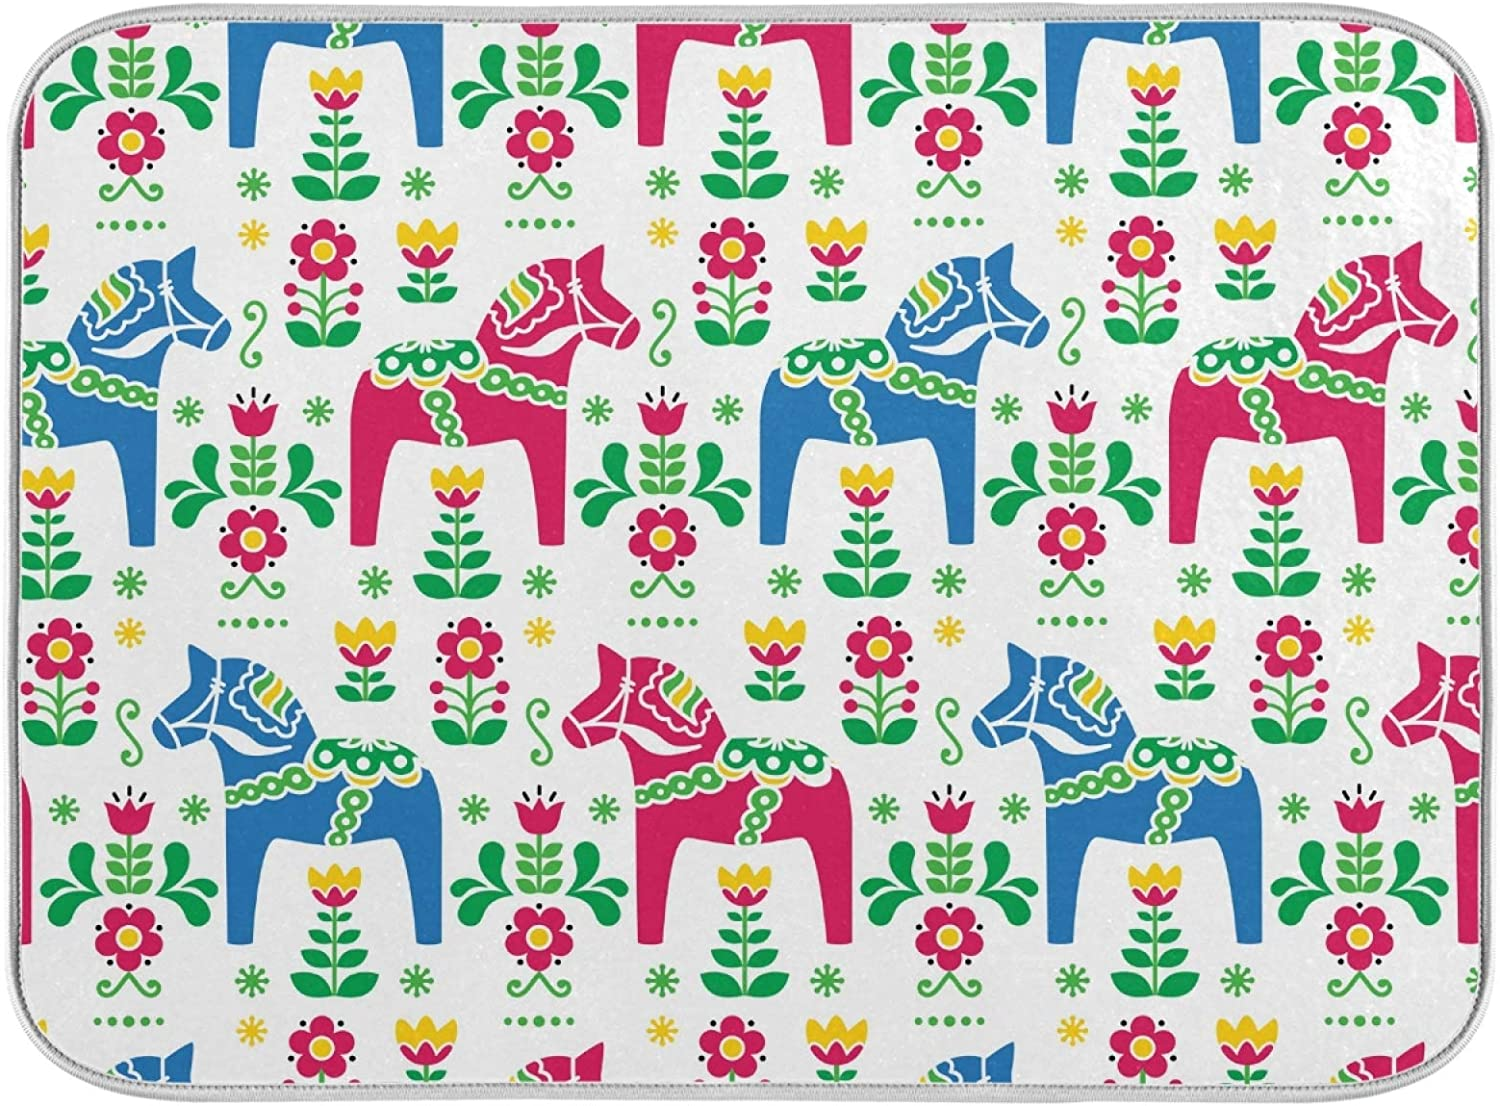 Dish Drying Mat for Kitchen Folk Art Dala Horse Absorbent Heat Resistant Dishes Drainer Pad 18 x 24 Inch